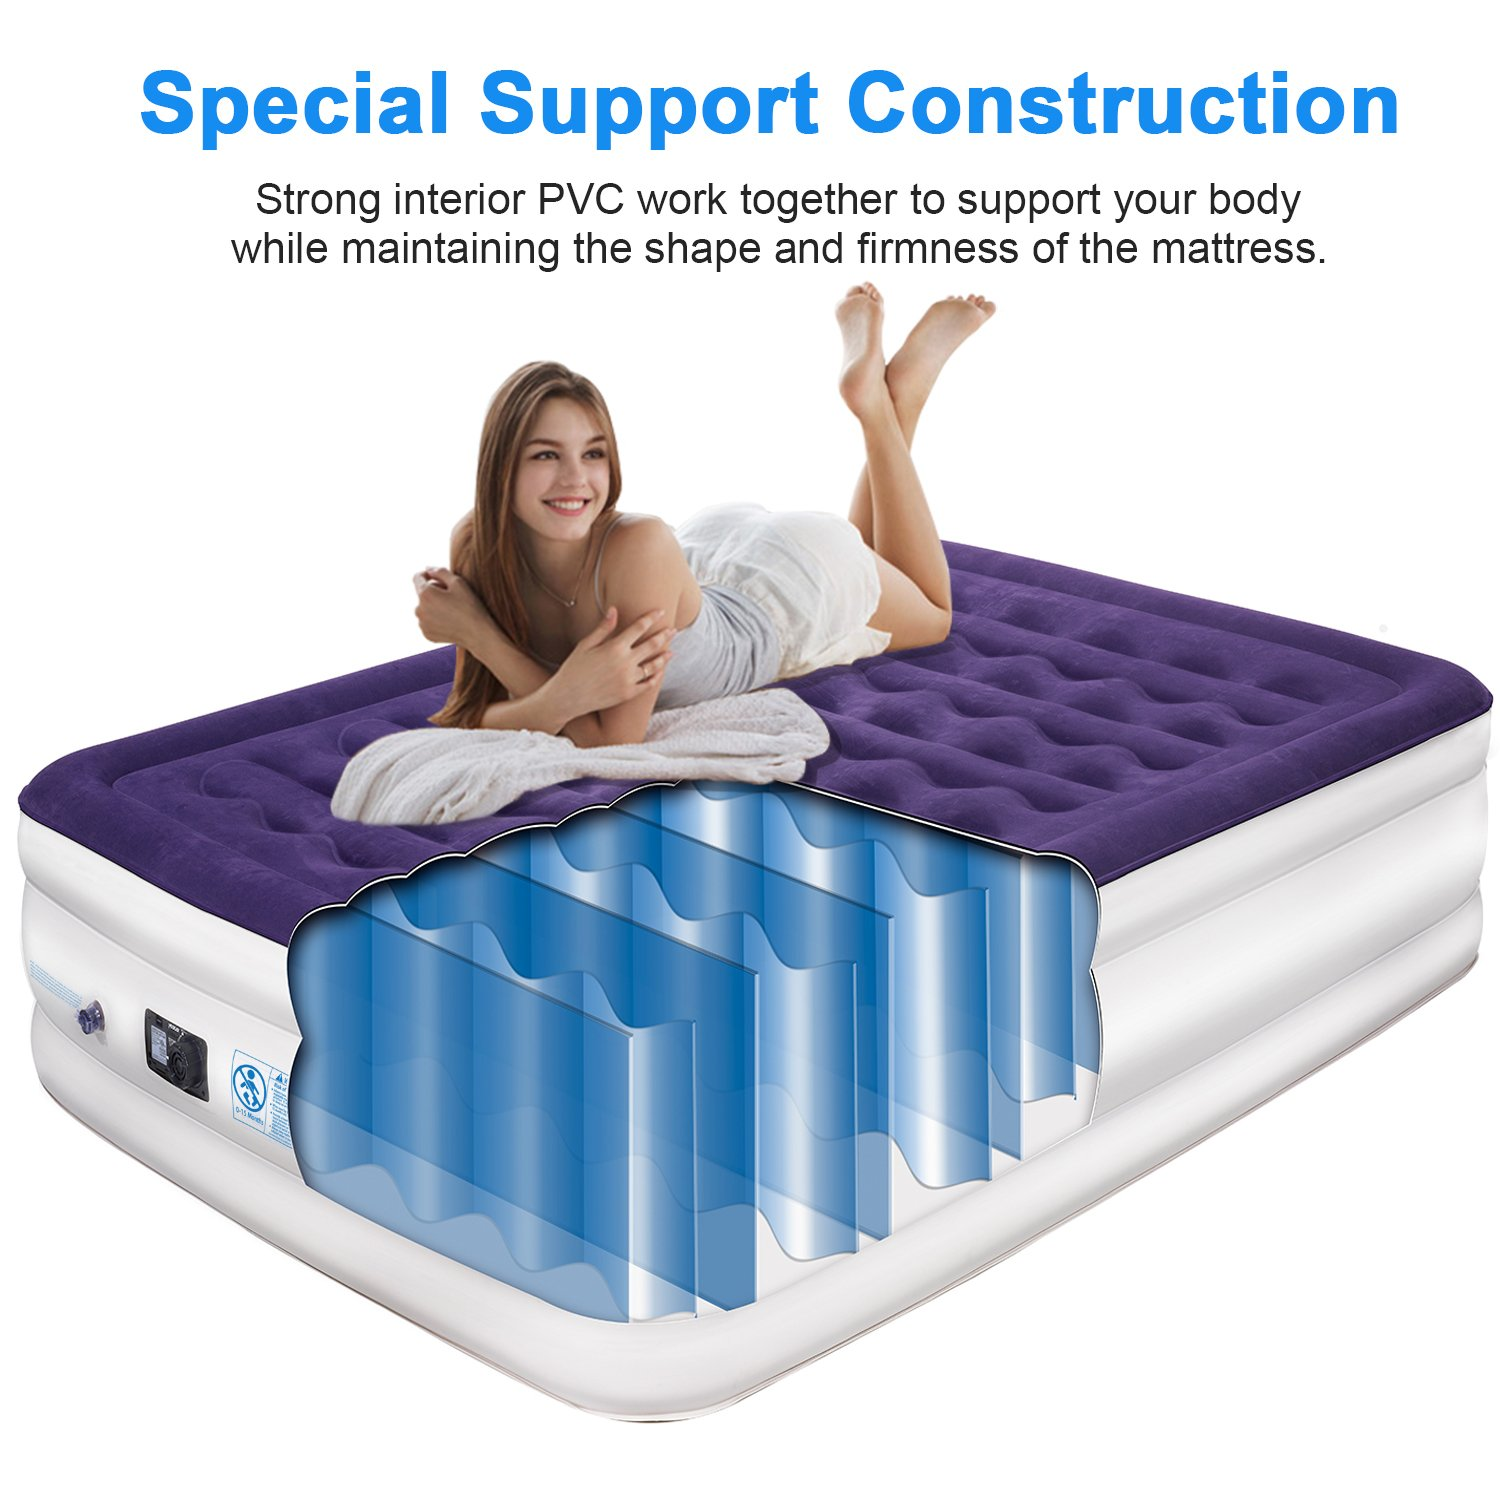 yeacar Air Mattress Blow Up Raised Airbed with Internal High Capacity Pump, Portable Inflatable Bed Queen Size by yeacar (Image #2)